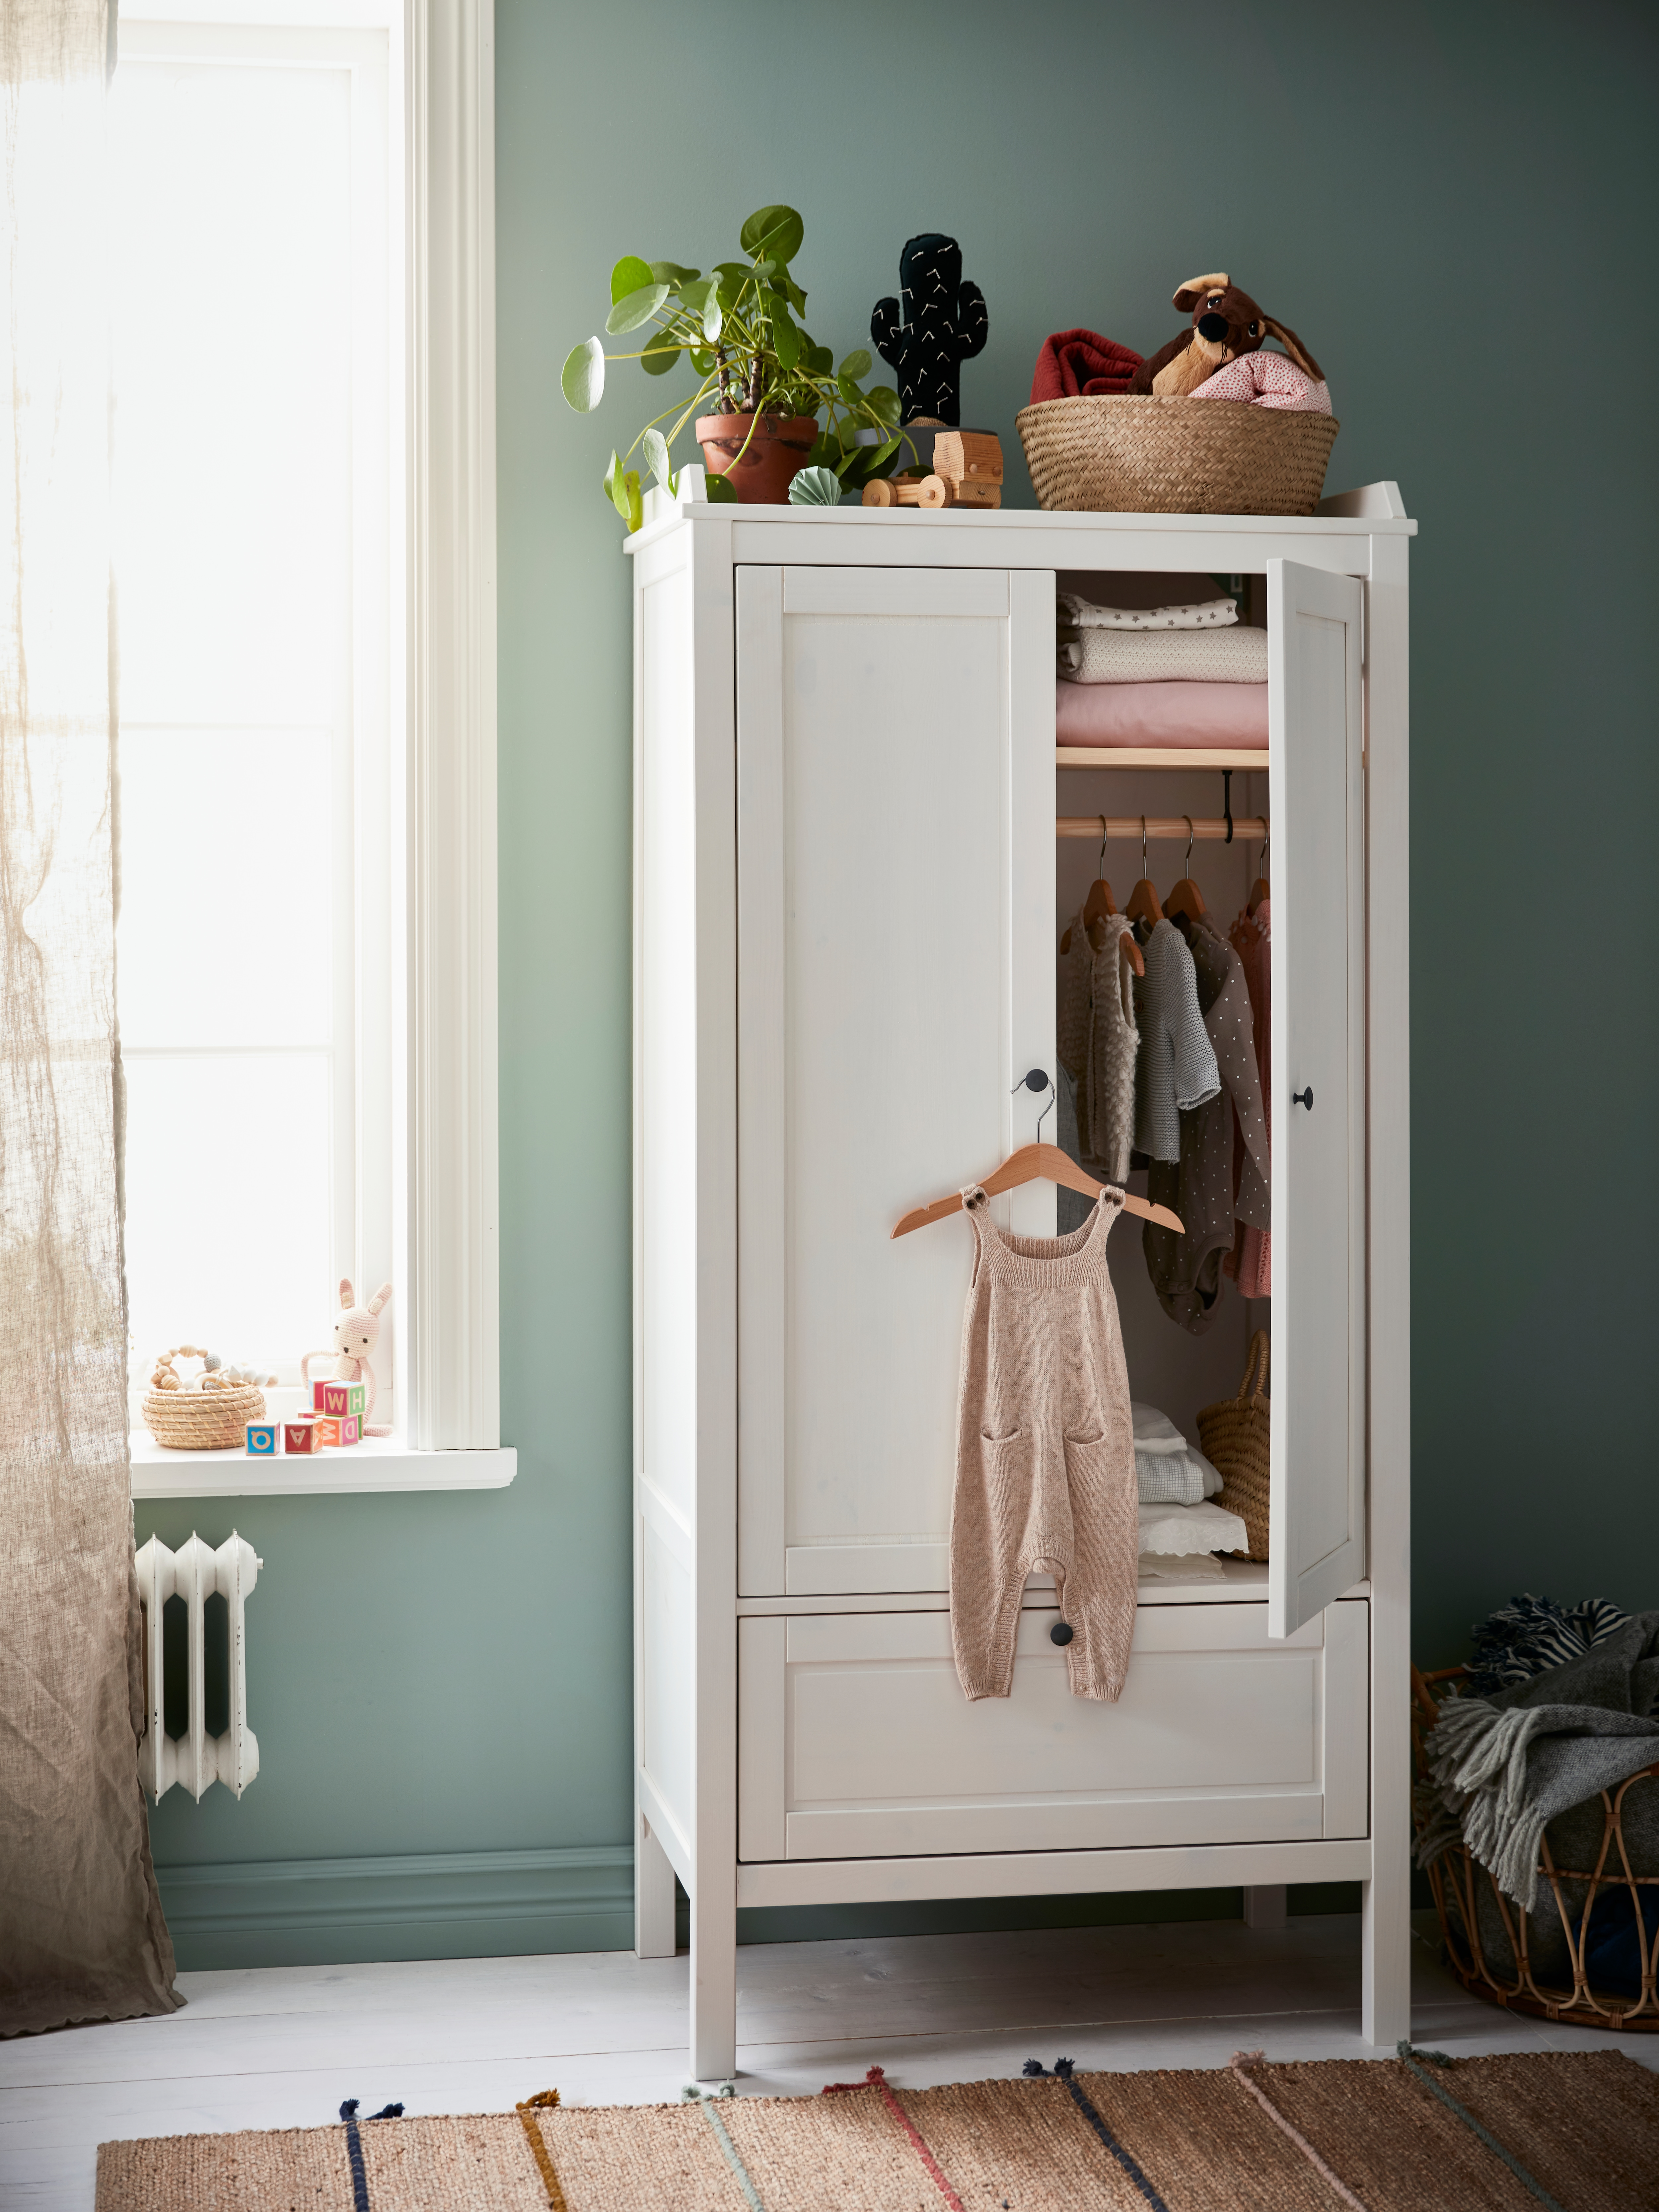 A white SUNDVIK wardrobe with a drawer and two hinged doors has a door open, showing baby clothes. It is on a green wall.